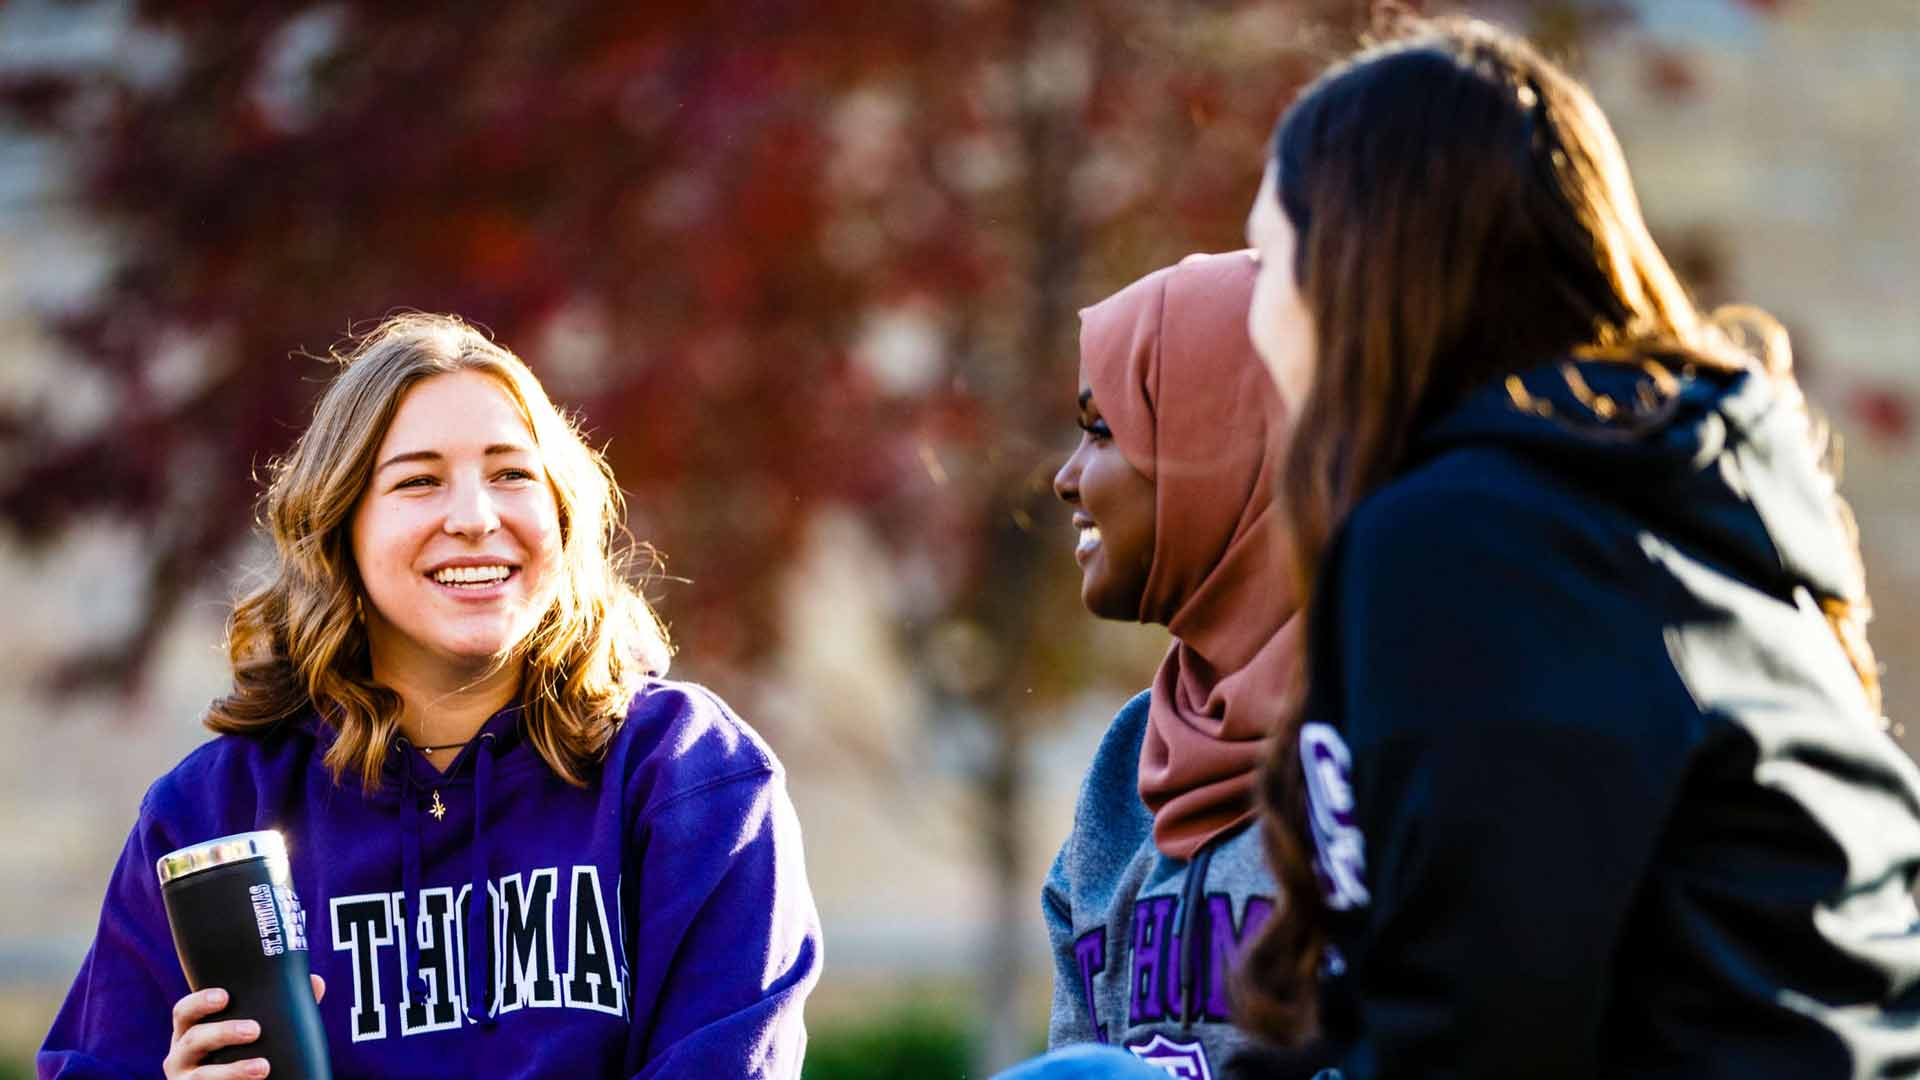 Maddy Rudkin, Najma Mohamed and Erin Engstran sitting and talking on the campus quad.